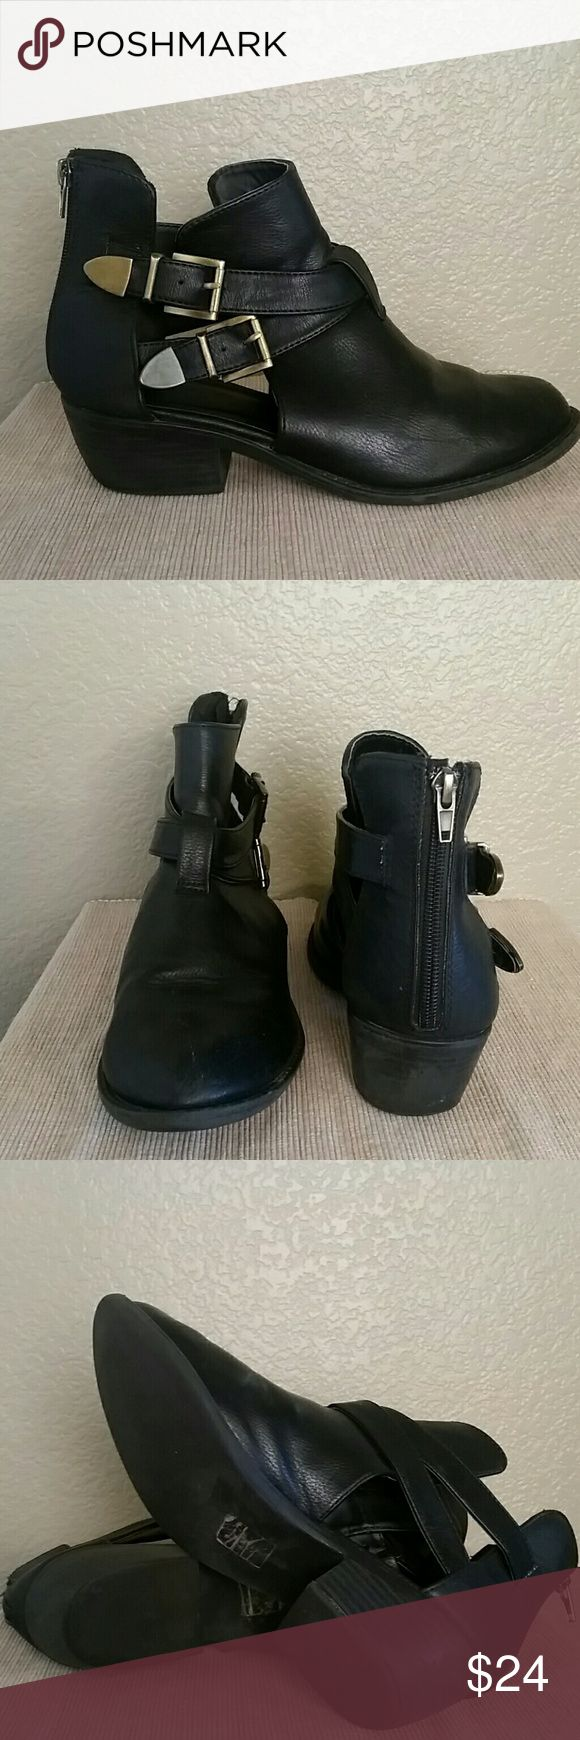 Black cutout ankle boots Black cutout boots, soda, size 9-no tag, worn but still super cute. Soda Shoes Ankle Boots & Booties